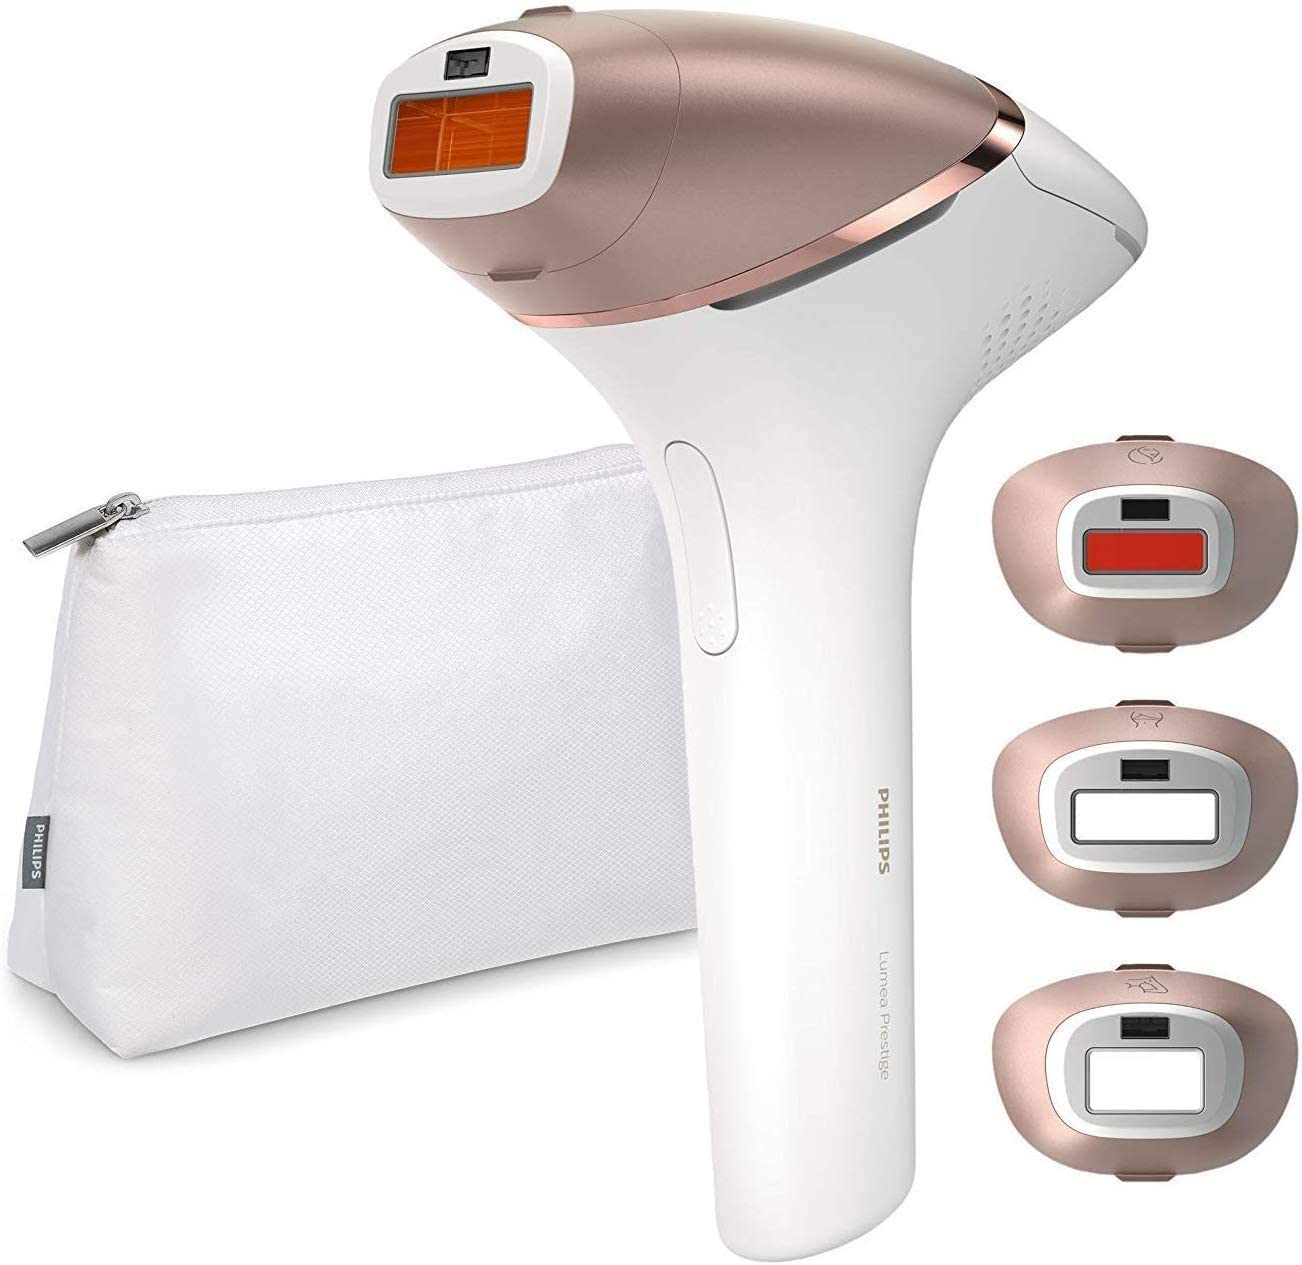 Philips Lumea Ipl Cordless Hair Removal 9000 Series With 4 Attachments For Body Face Bikini And Underarms And Senseiq Technology Bri957 00 Amazon Co Uk Health Personal Care